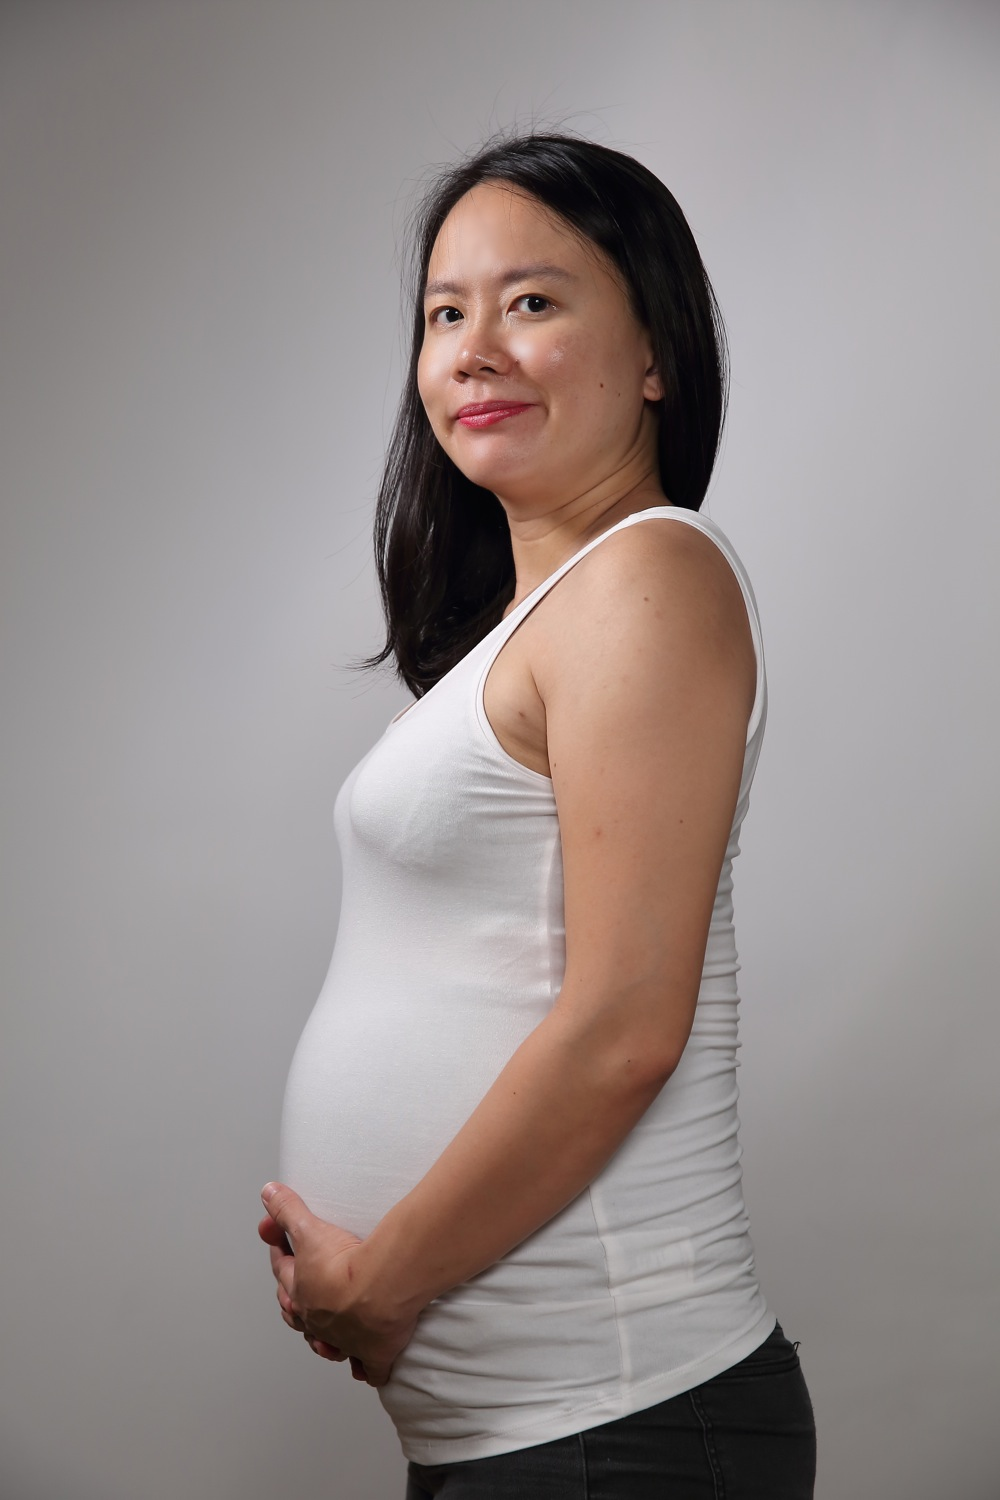 Maternity studio photo shoot with Mudframes